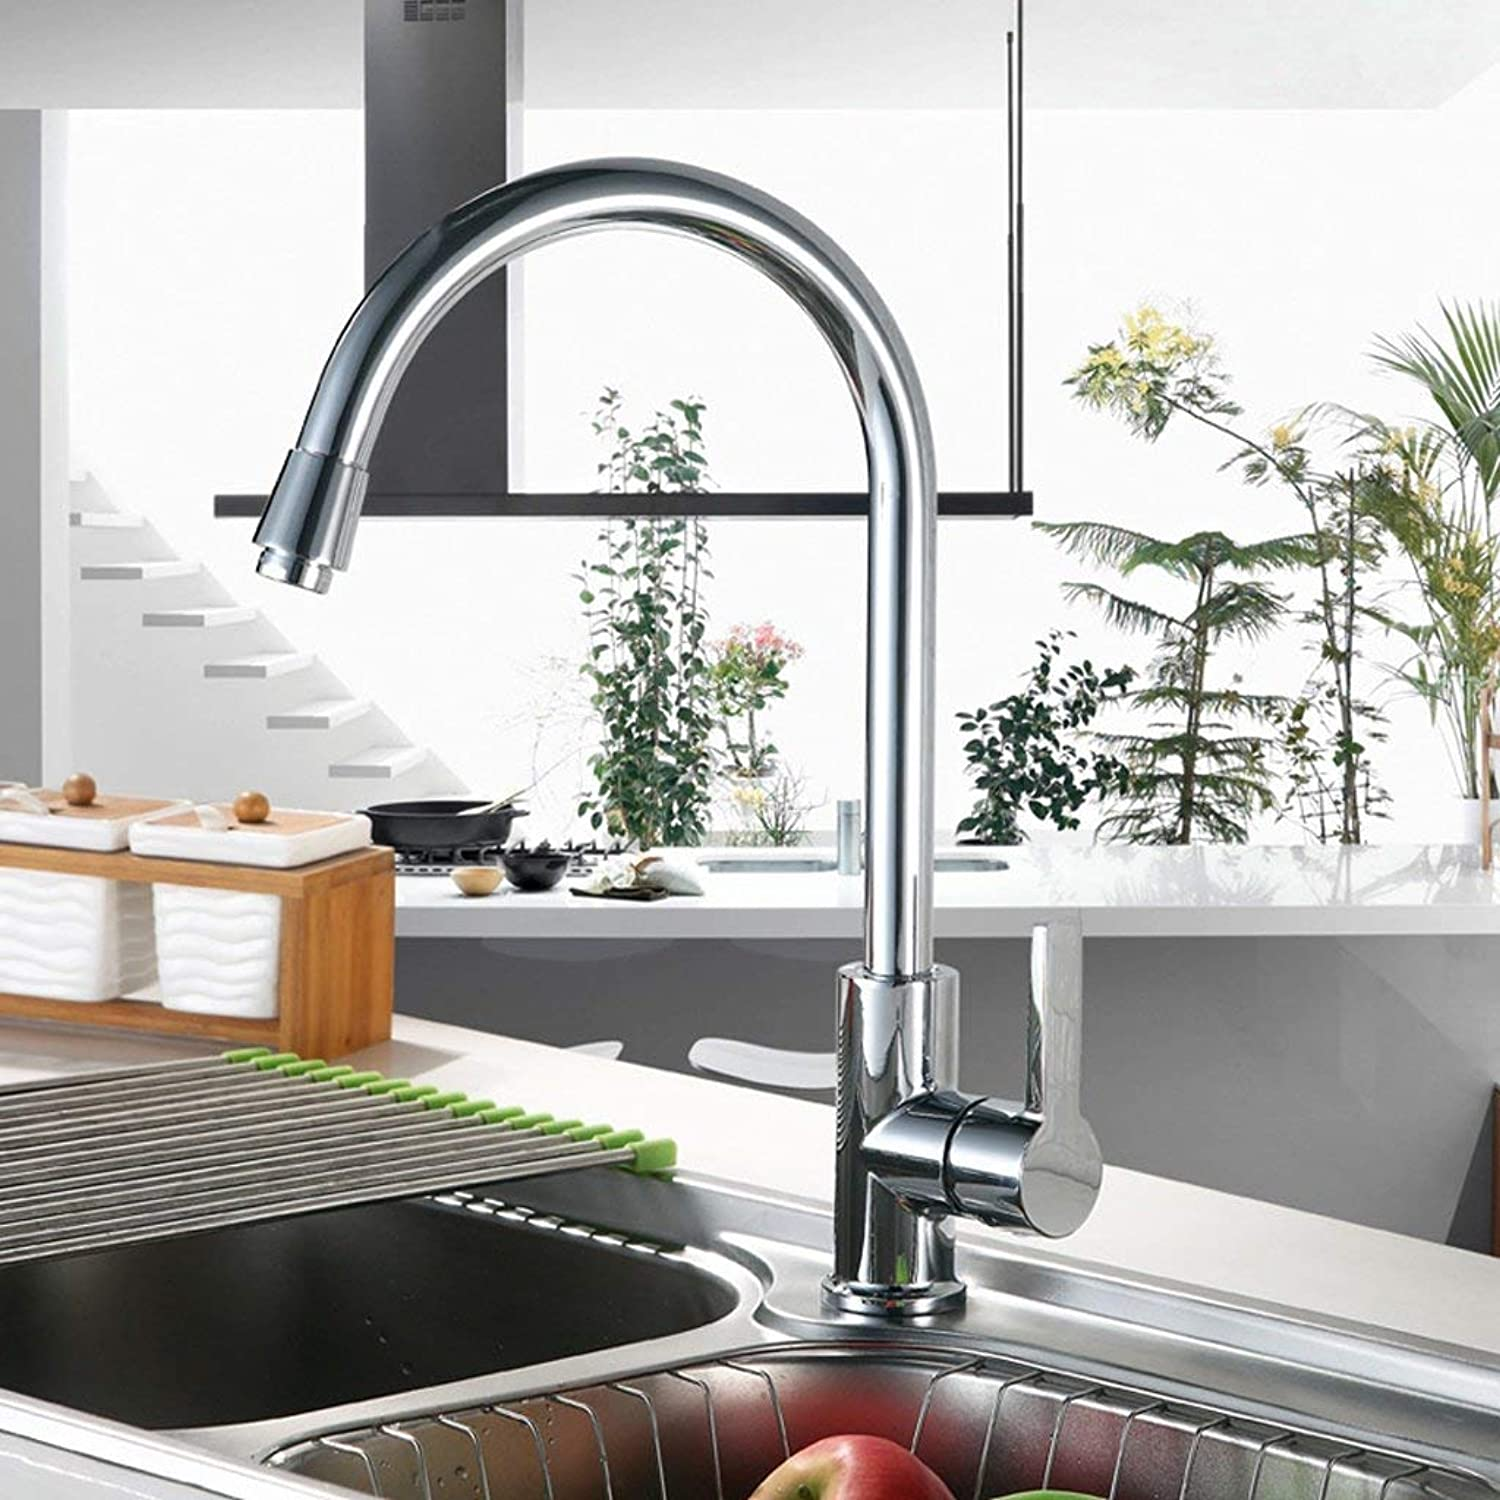 DYR Faucet kitchen hot? and cold faucet copper washing the pool bowl basin faucet sink faucet